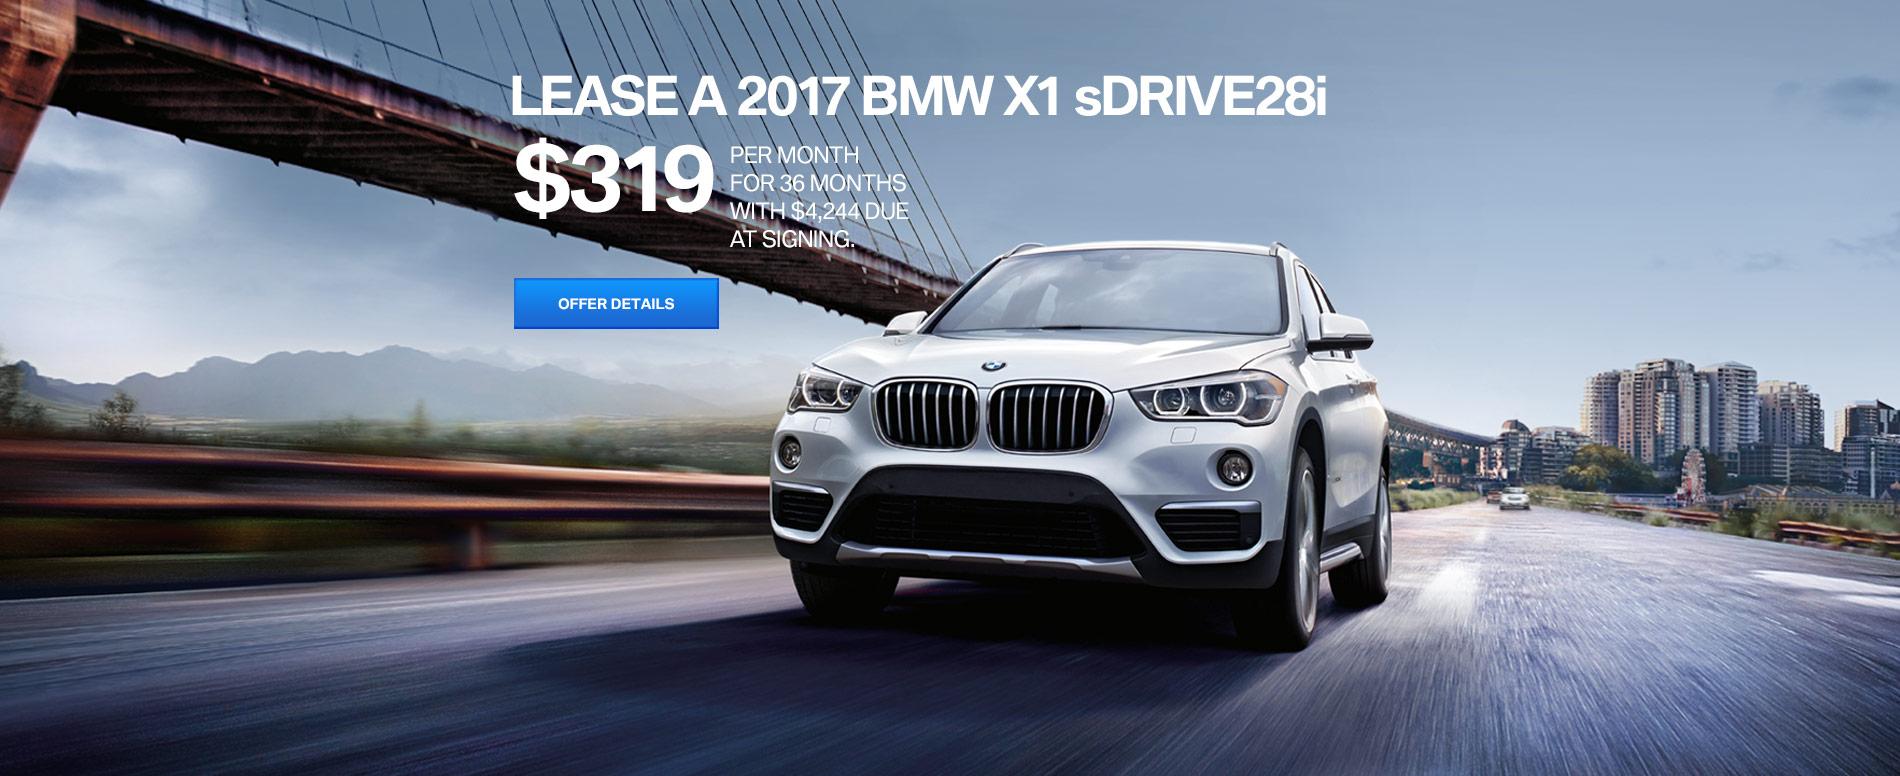 X1 sDrive28i Lease for $319/mo for 36 months